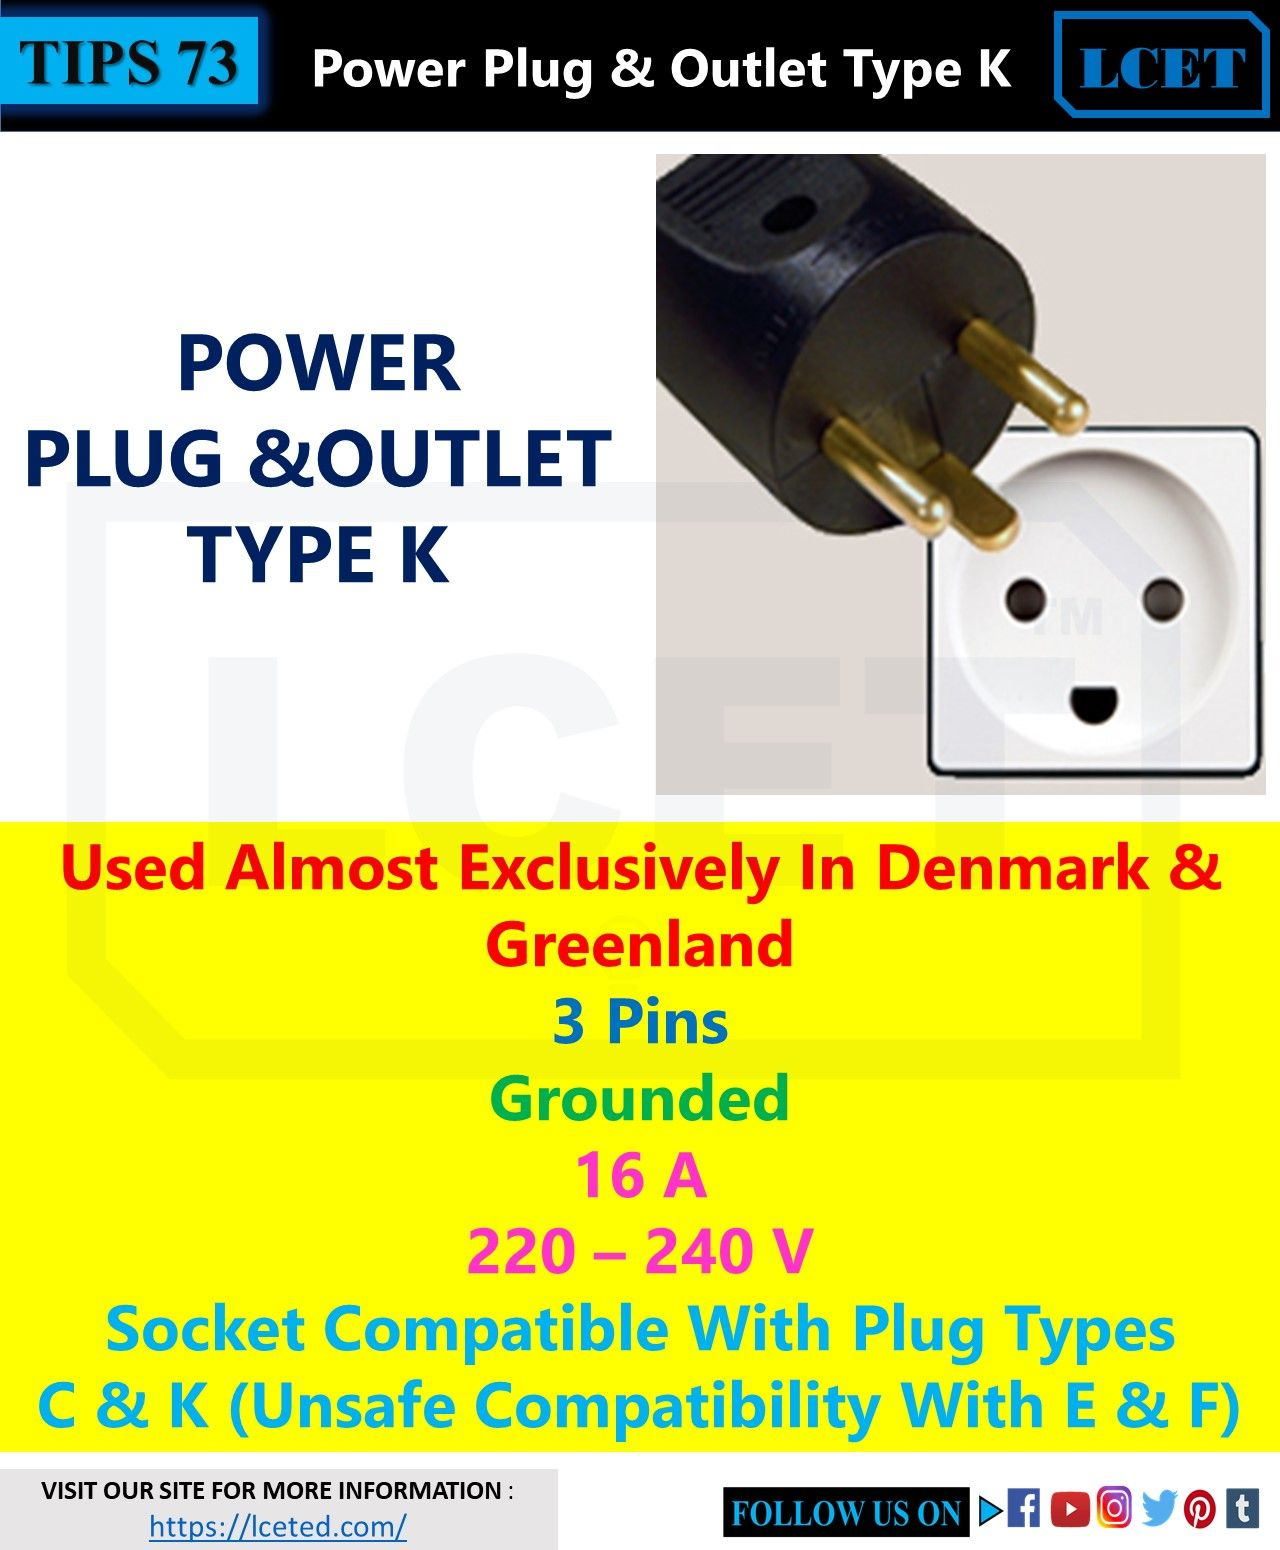 Types Of Power Plug Outlet In 2020 Power Plug Civil Engineering Diy Electrical